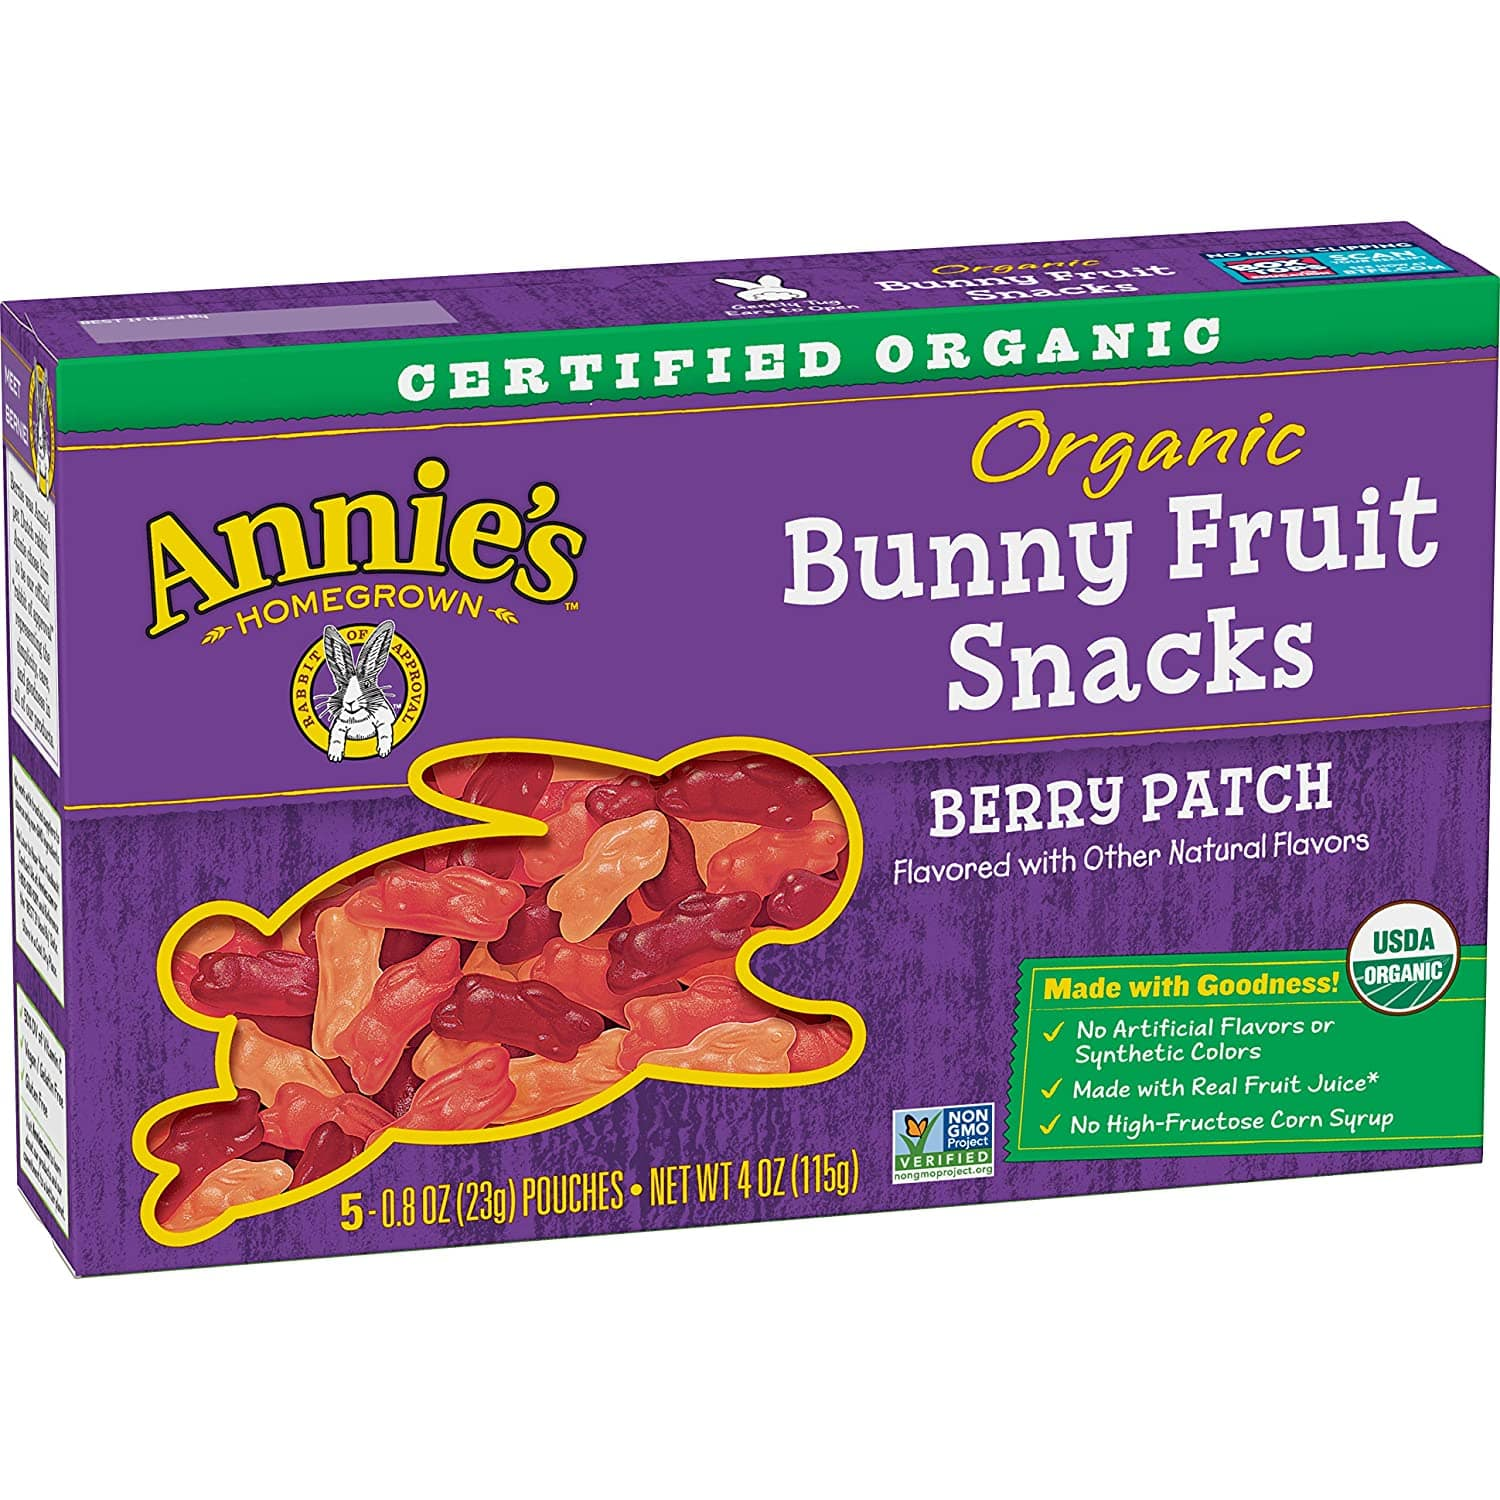 Annie's Homegrown Organic Bunny Fruit Snacks, Berry Patch - 5 pack, 0.8 oz pouches $1.89